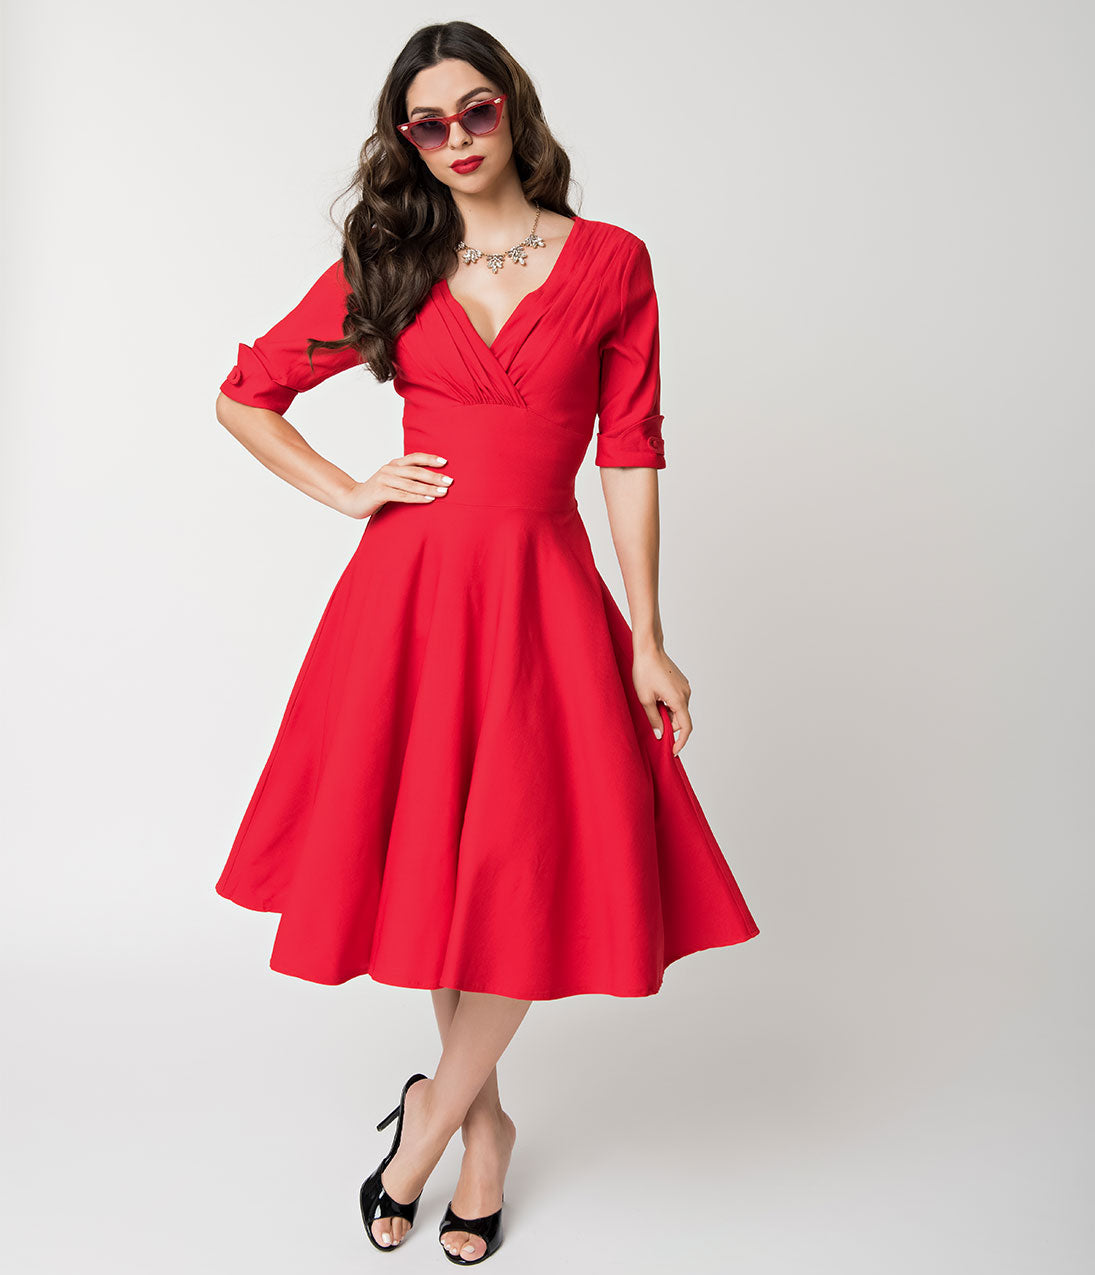 500 Vintage Style Dresses for Sale | Vintage Inspired Dresses Unique Vintage 1950S Red Delores Swing Dress With Sleeves $88.00 AT vintagedancer.com